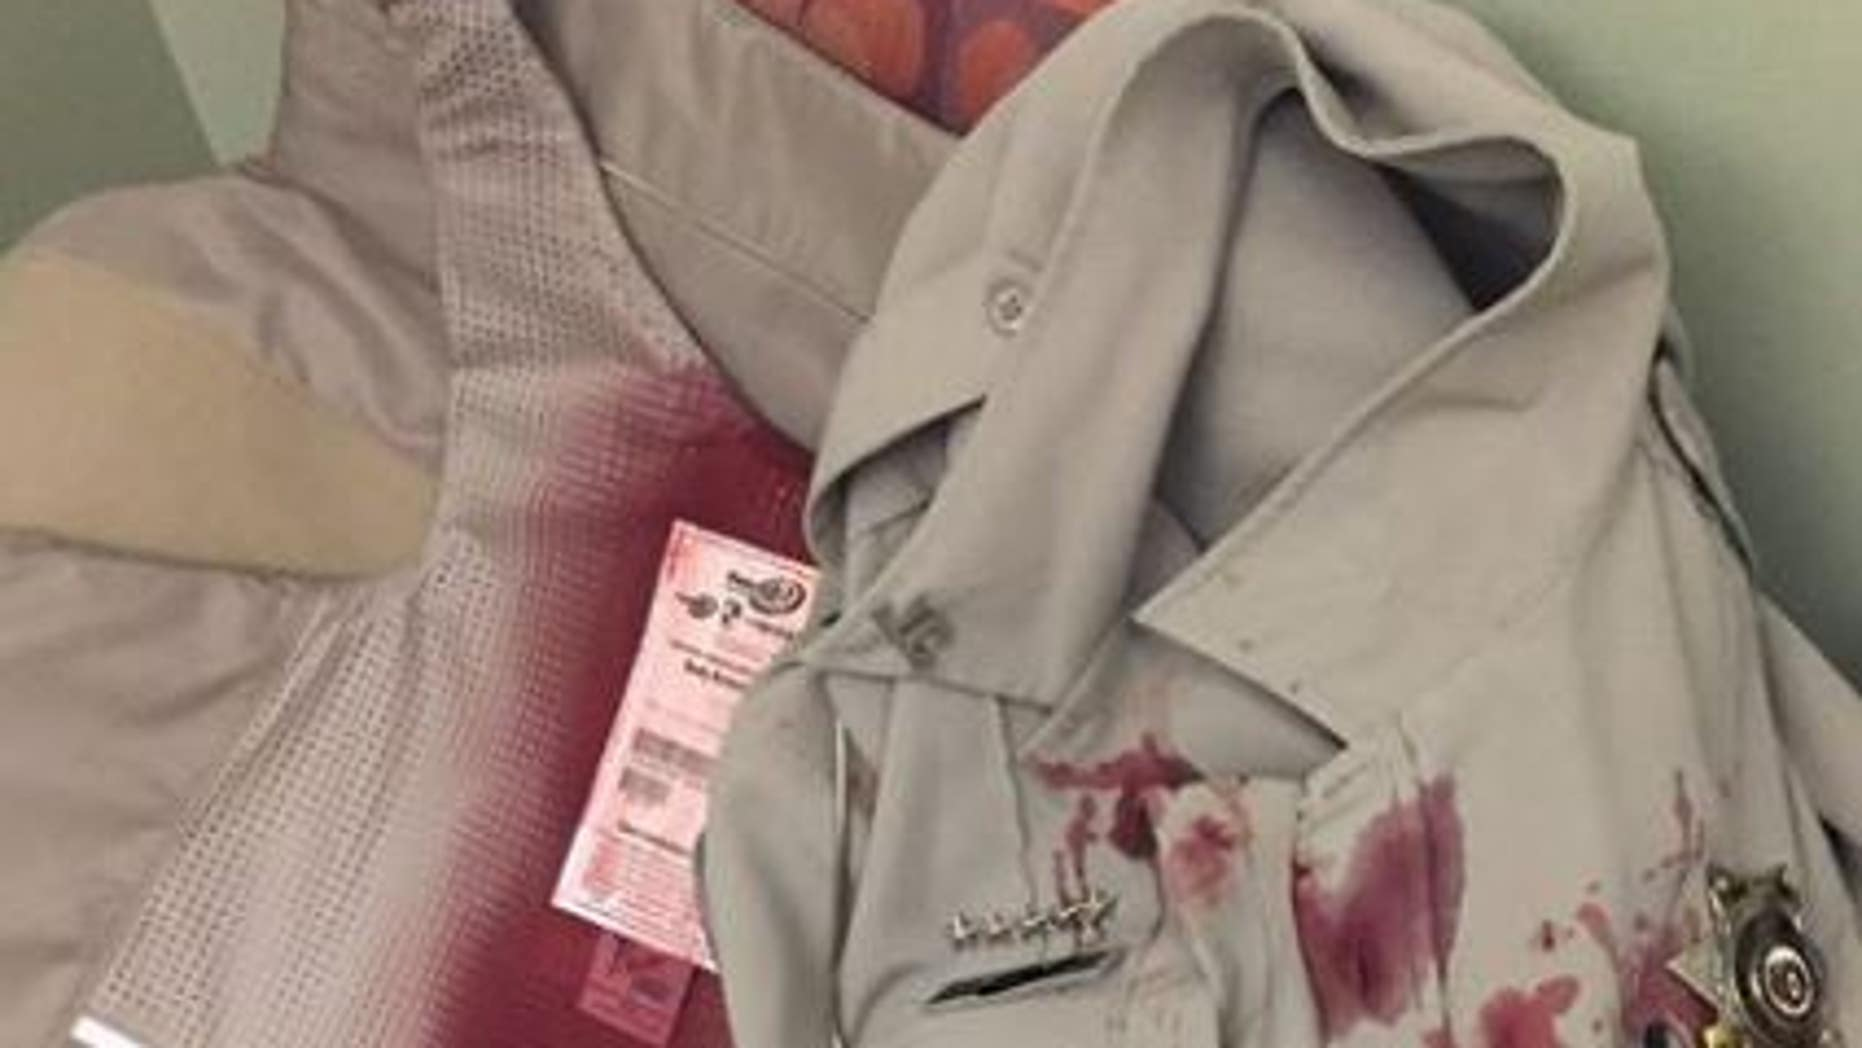 The image shows a Missouri police officer's bload-soaked uniform after he was attacked by a dog while serving a civil summons on Tuesday.